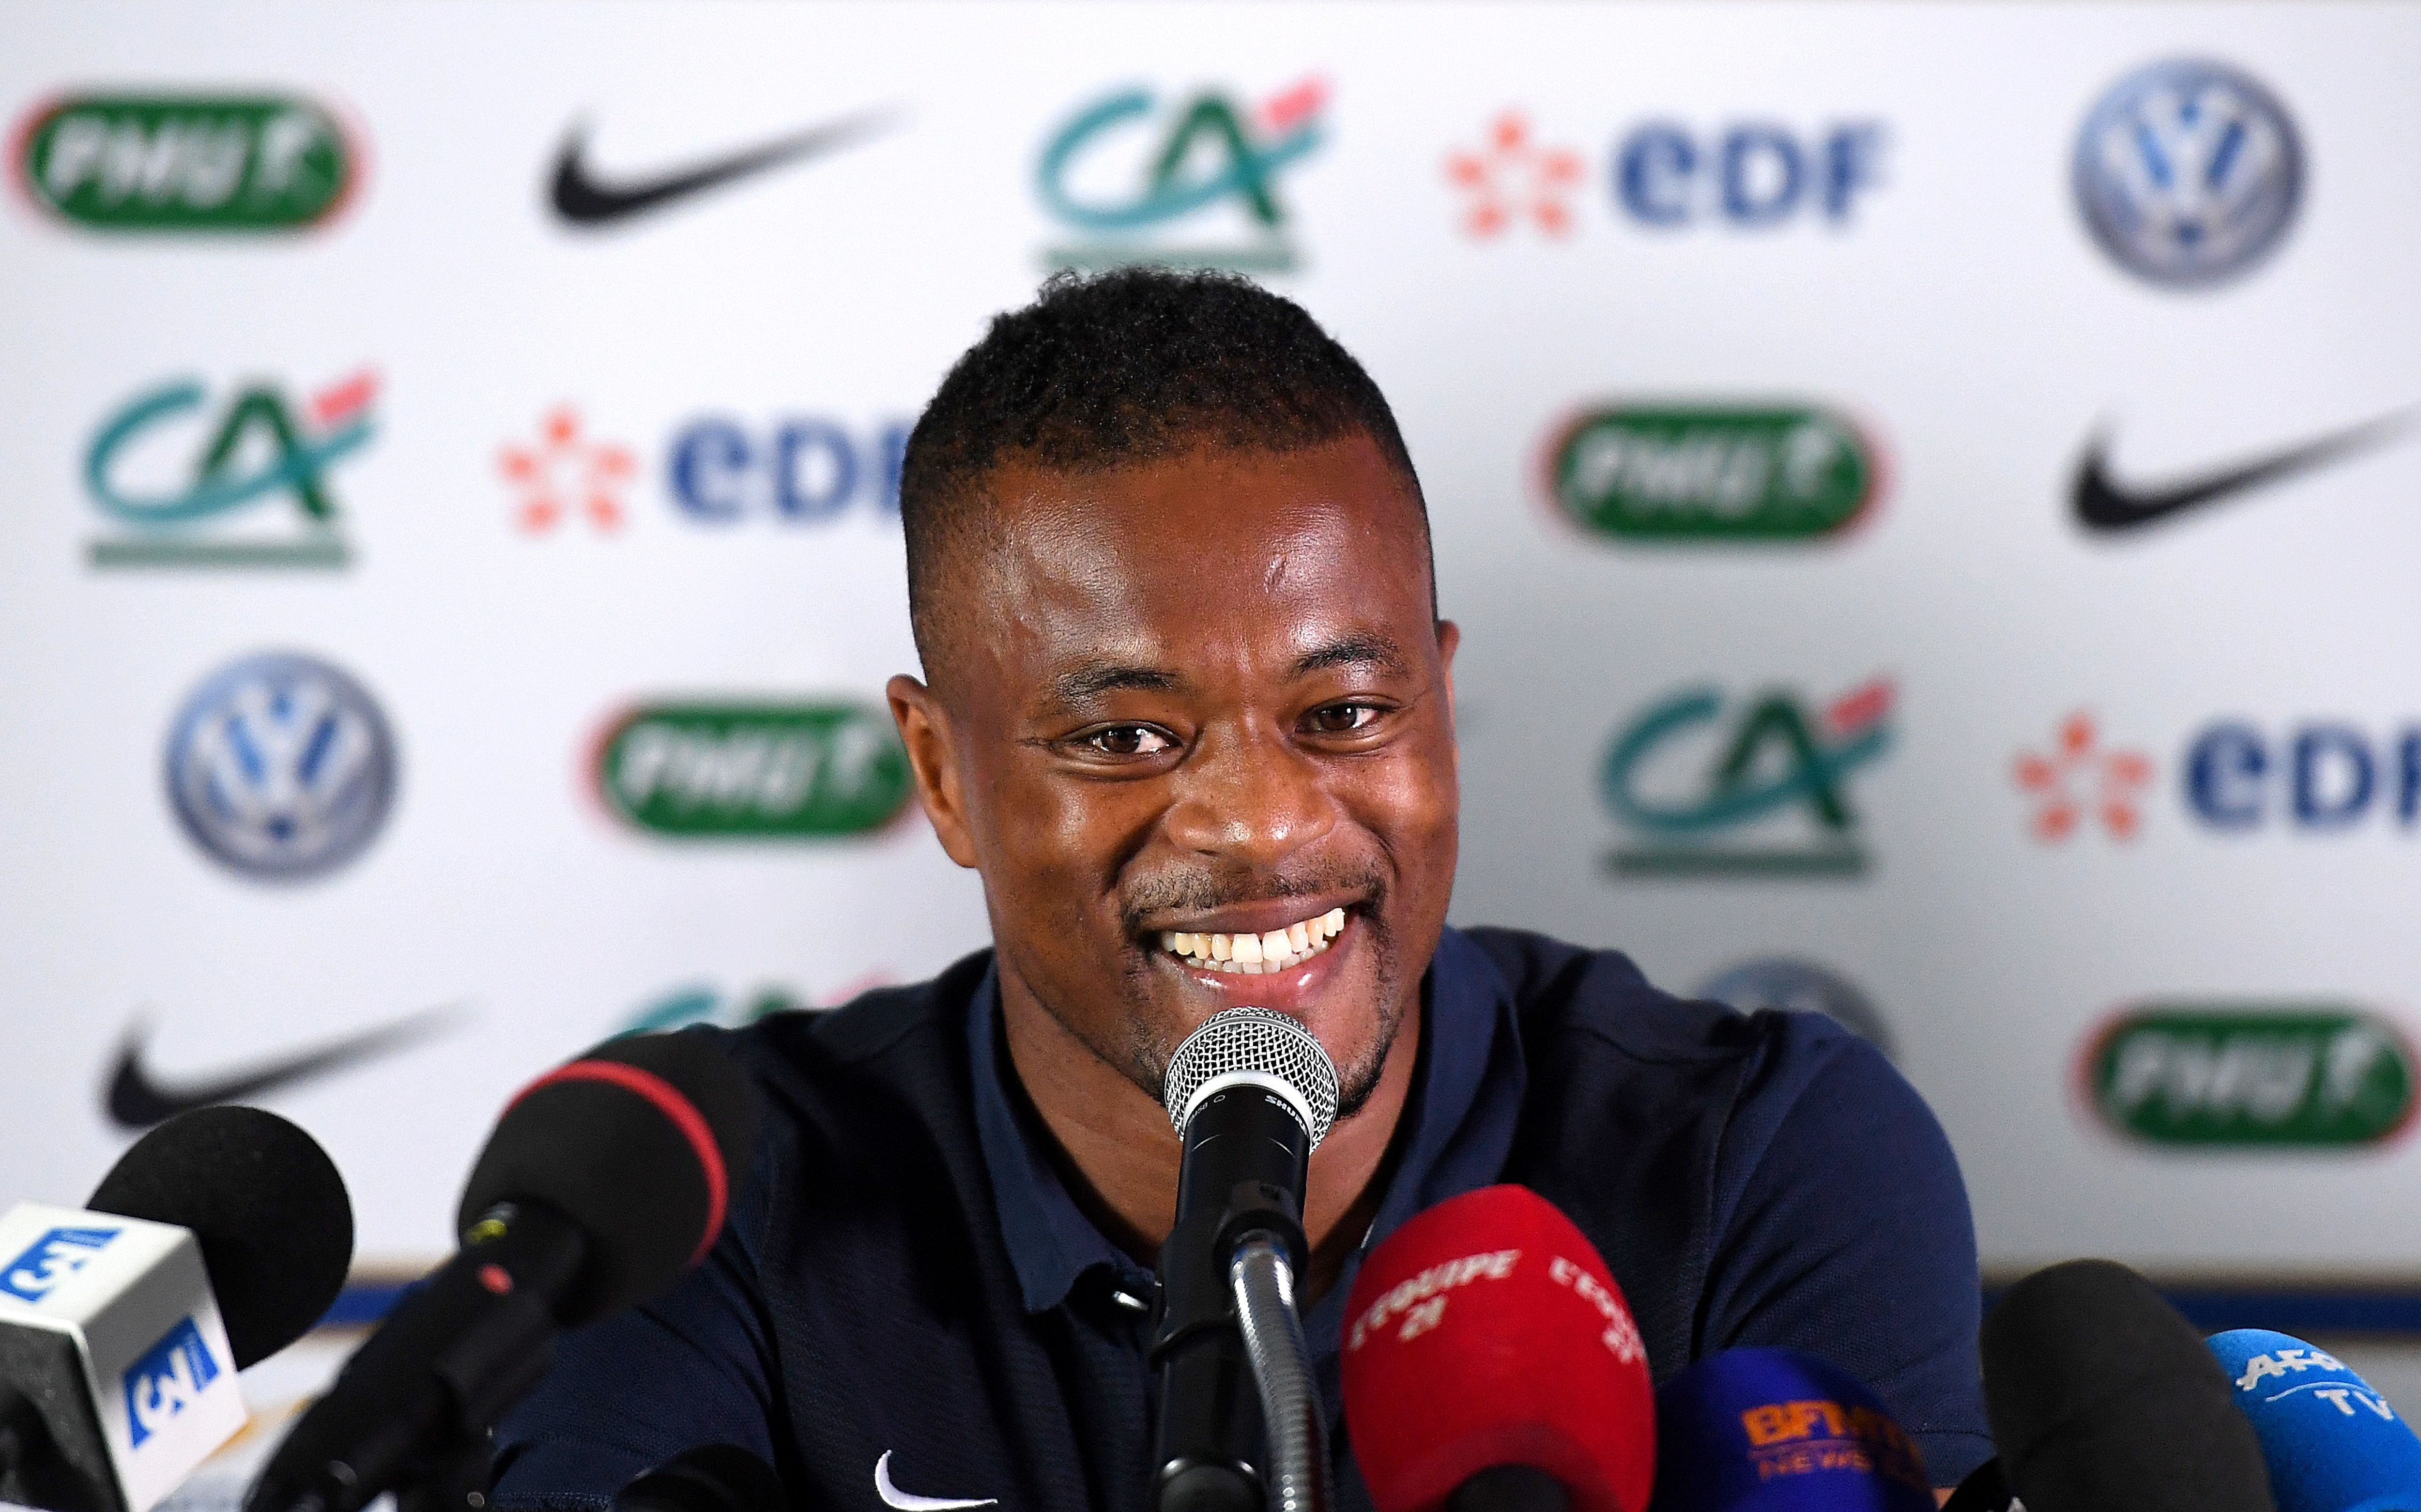 Manchester United legend Patrice Evra shows his colours after encounter with young France supporter